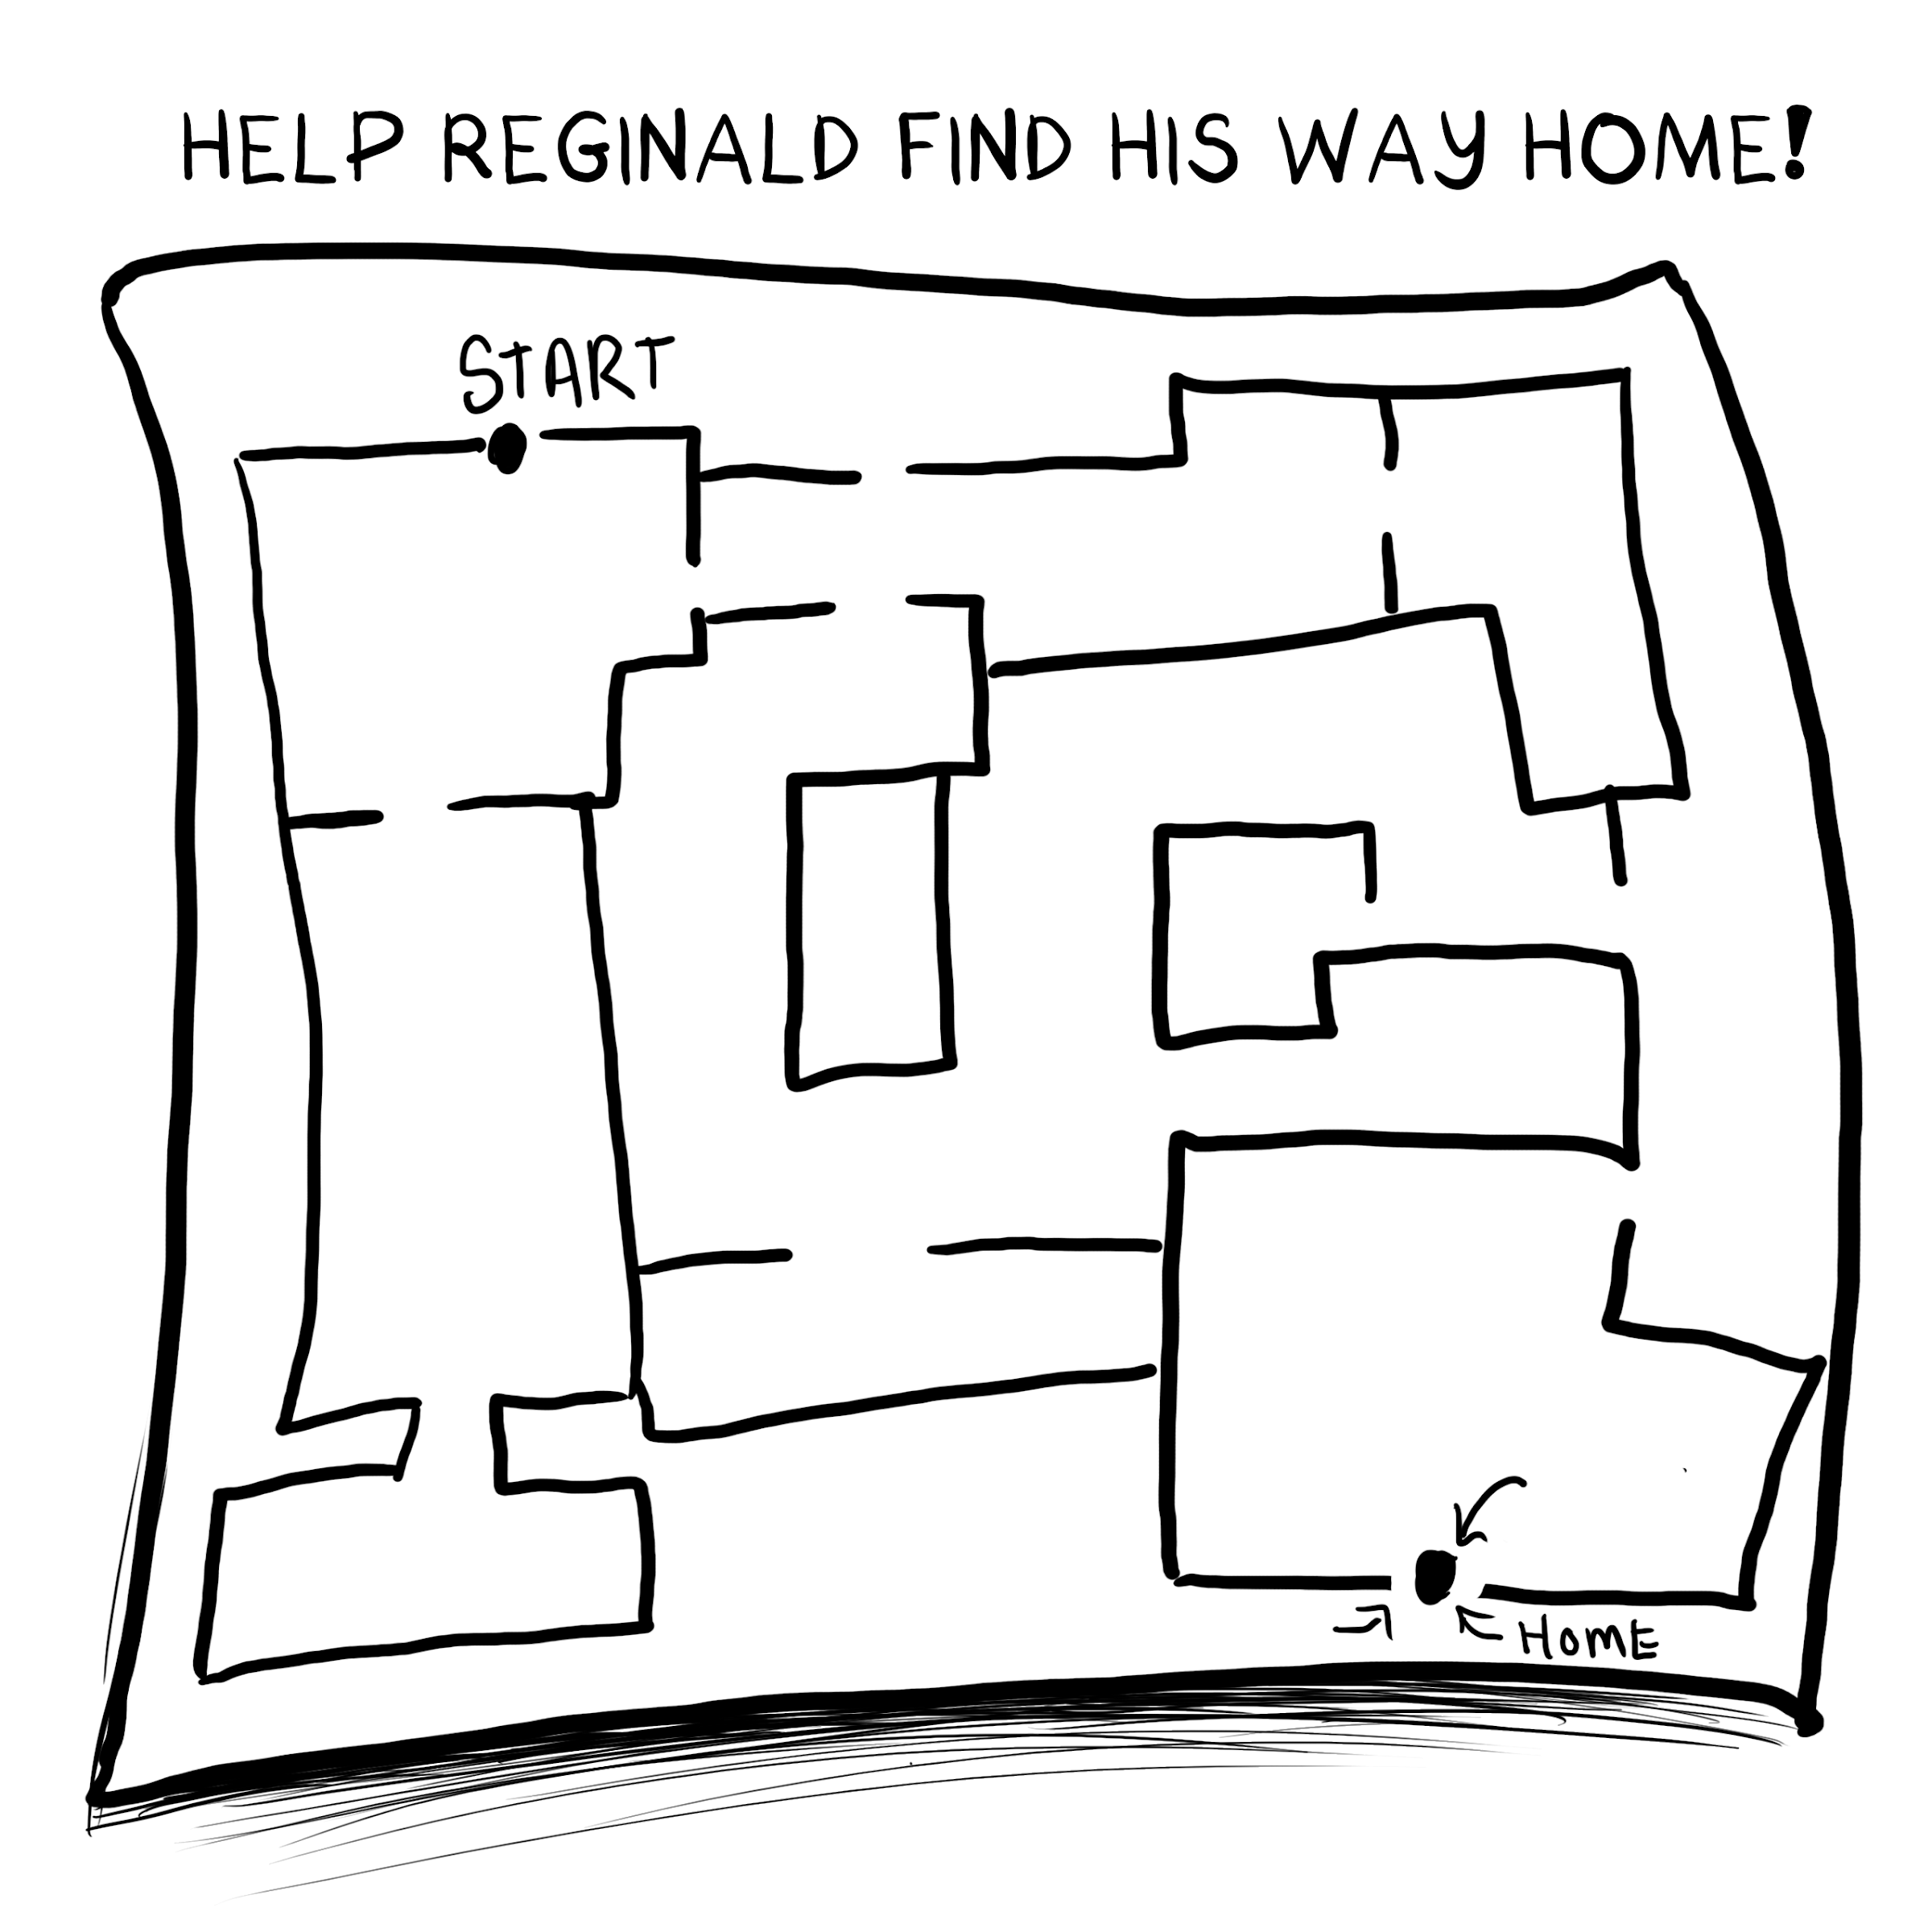 Help Reginald find his way home map